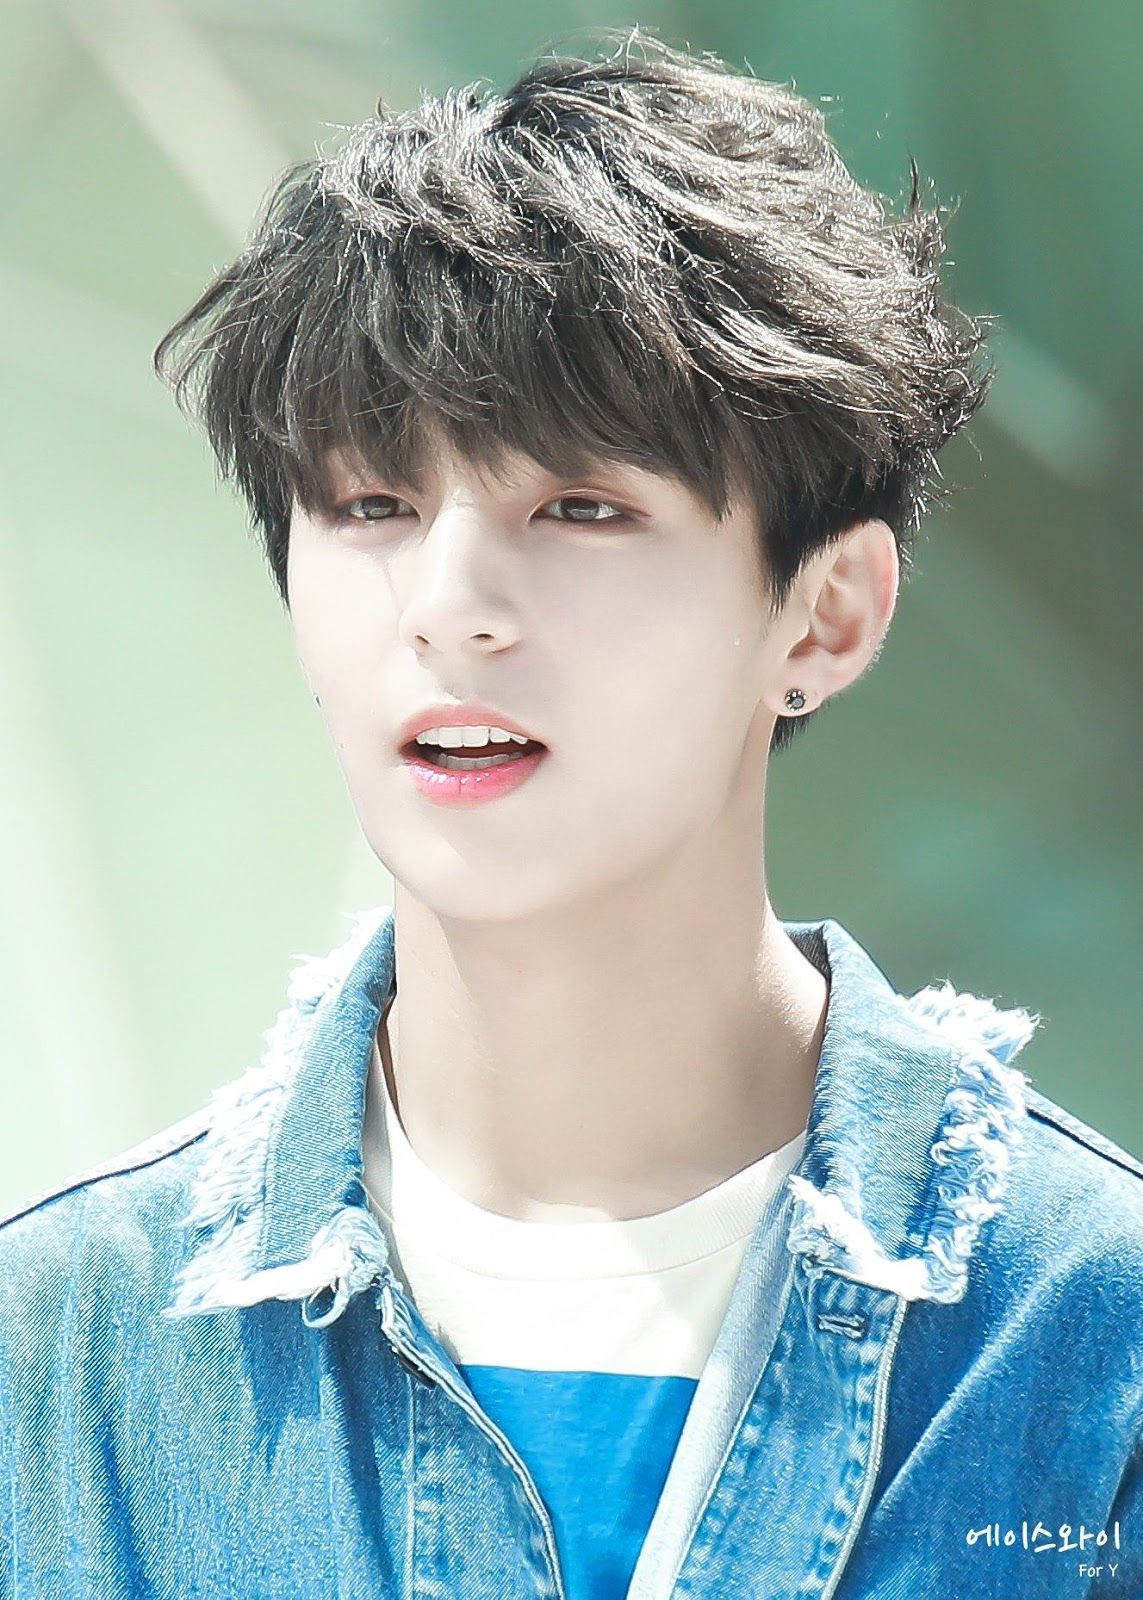 49 Korean Hairstyle Hd Images Top Ideas Hair Designs Famele And Men S Hairstyle Design New Hair In 2020 Korean Men Hairstyle Korean Hairstyle Boy Hairstyles